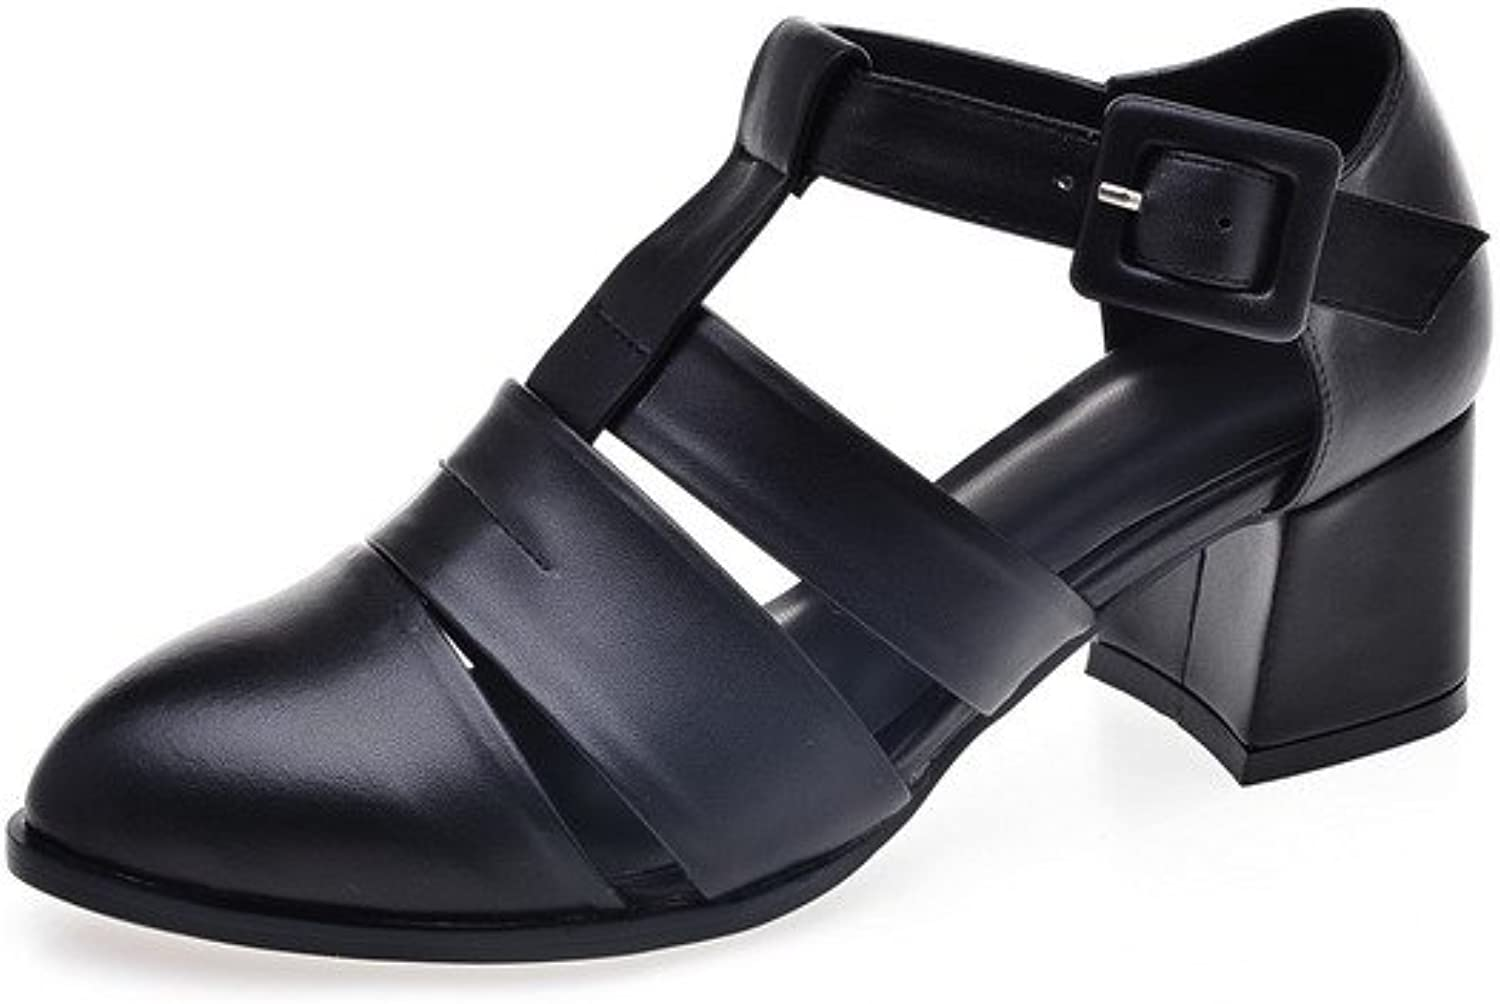 AmoonyFashion Women's Buckle Low-Heels Cow Leather Solid Pointed-Toe Sandals